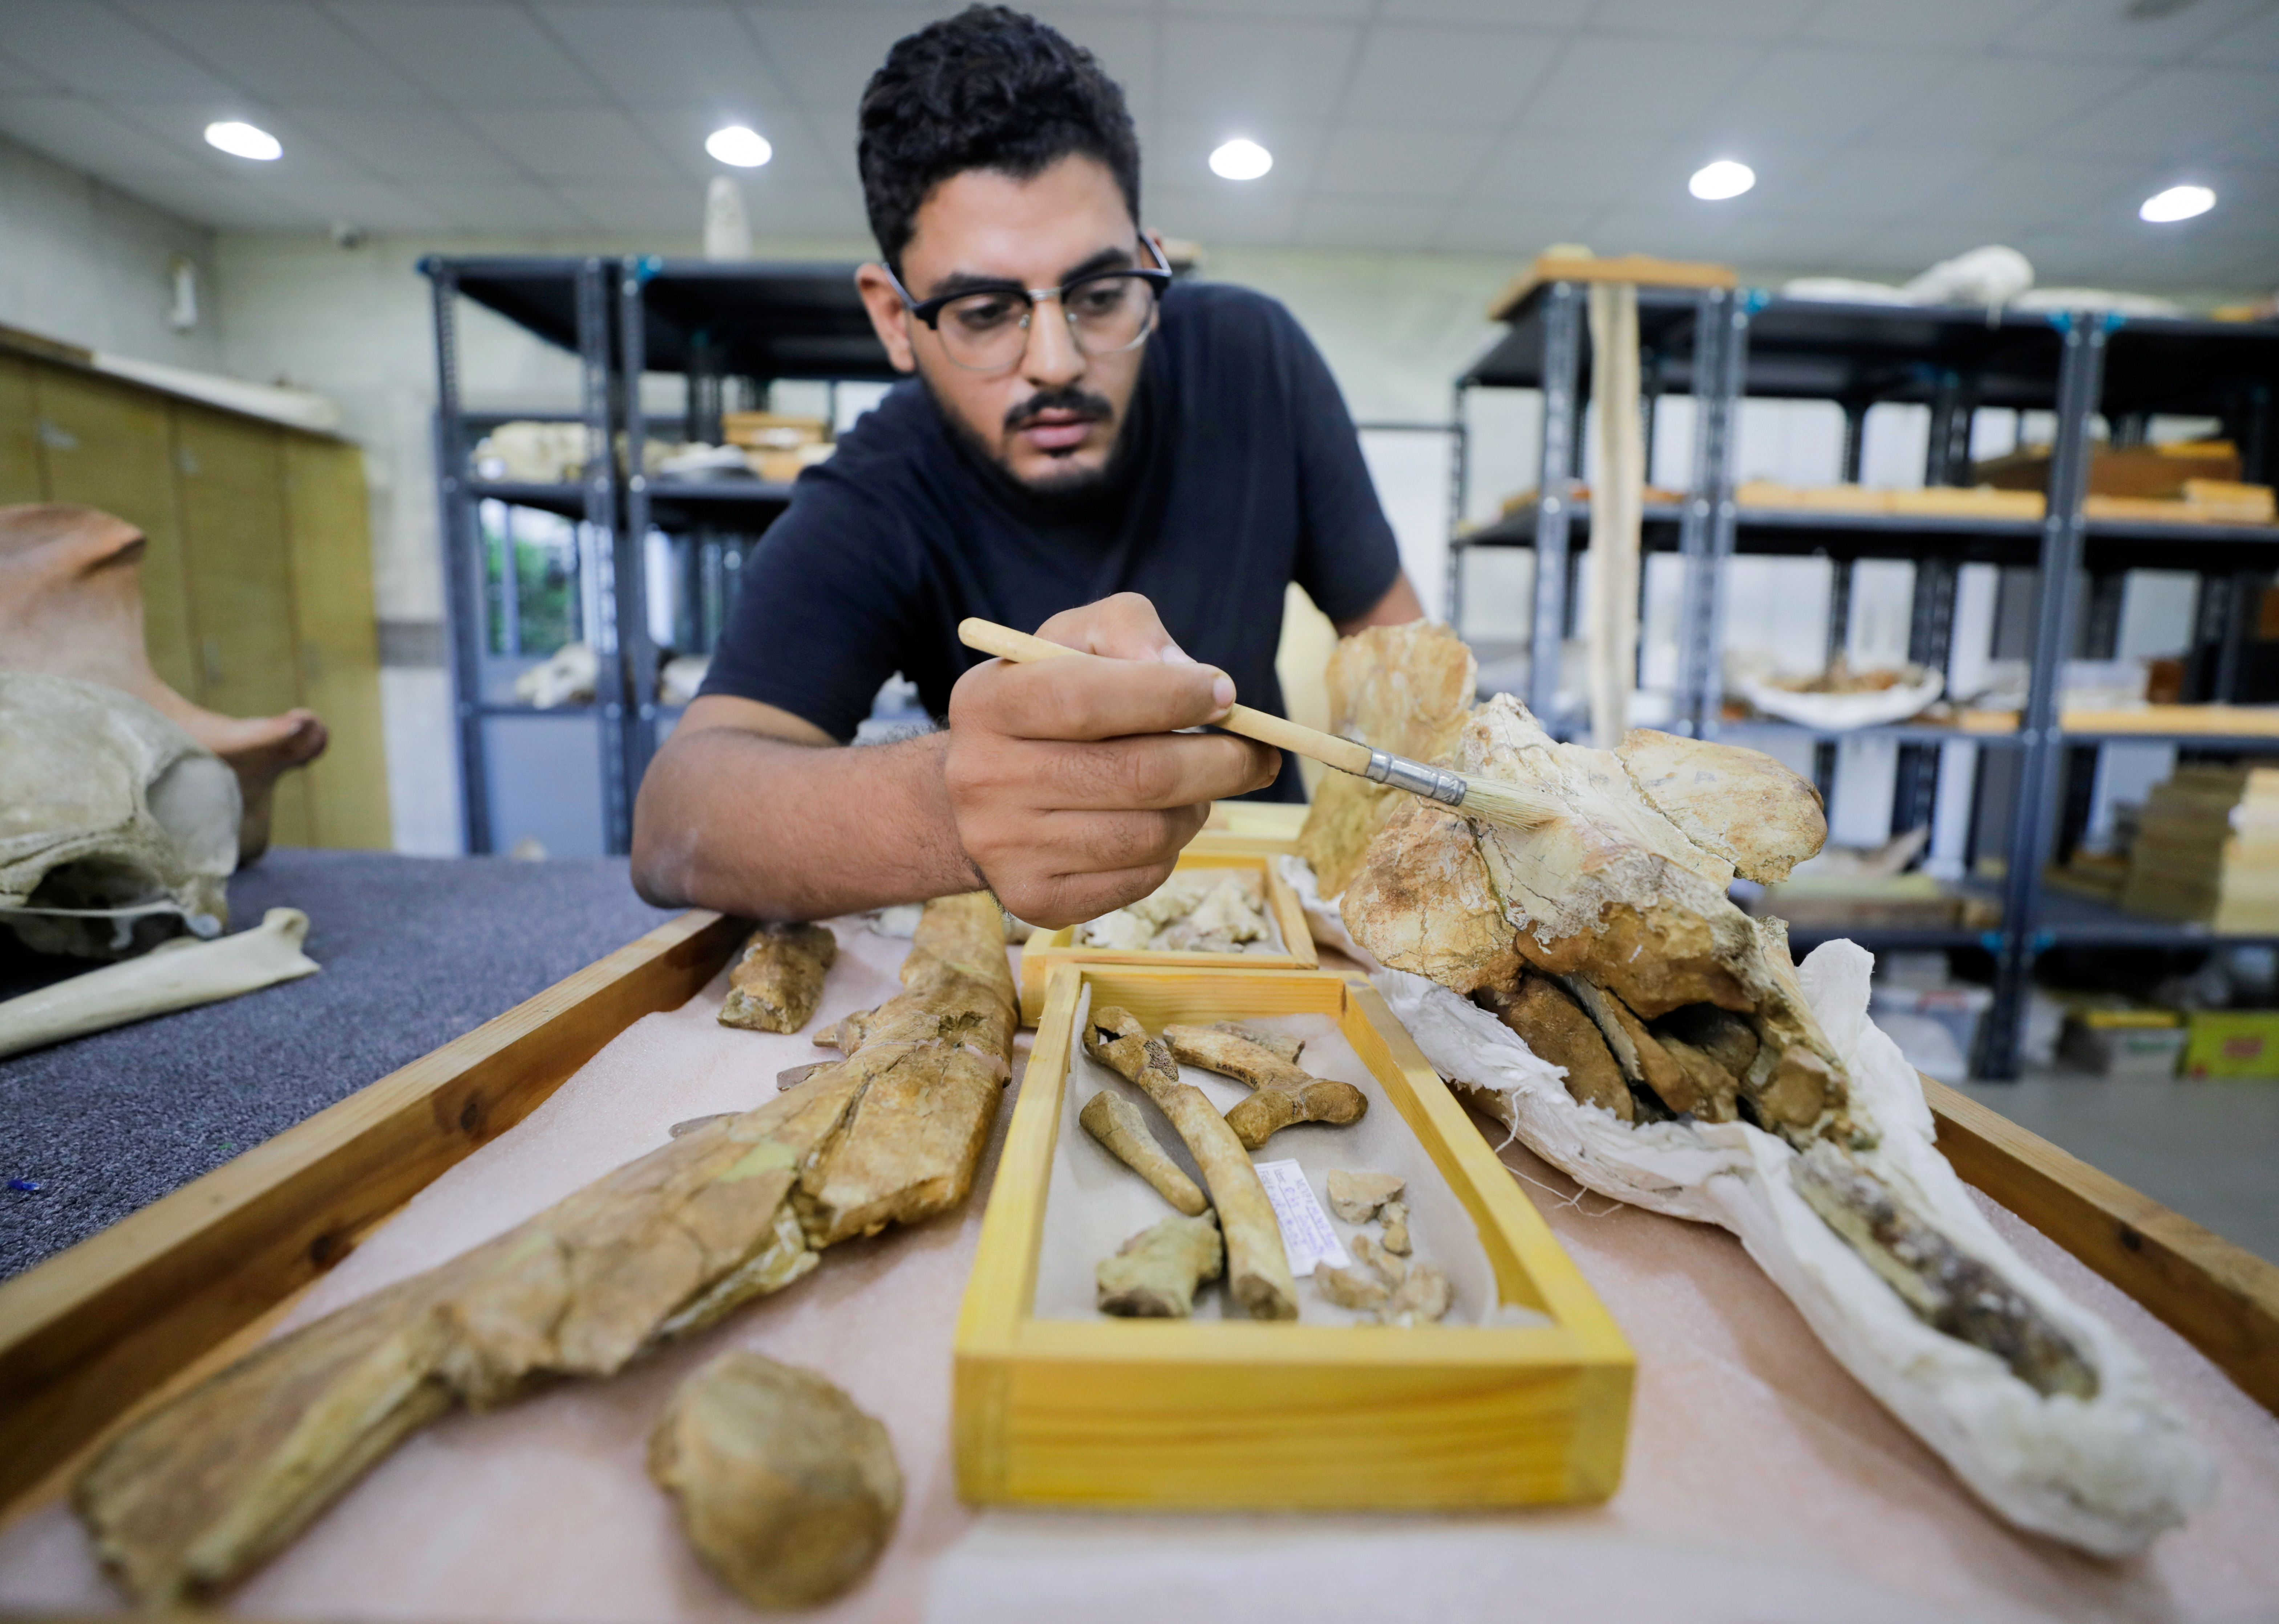 """Abdullah Gohar, a researcher at El Mansoura, university works on renovating the 43 million-year-old fossil of a previously unknown four-legged amphibious whale called """"Phiomicetus Anubis"""", that helps trace the transition of whales from land to sea, which were discovered in the Fayum Depression in the Western Desert of Egypt, near the town of El Mansoura, north of Cairo, Egypt August 26, 2021. REUTERS/Mohamed Abd El Ghany - RC22DP96634K"""